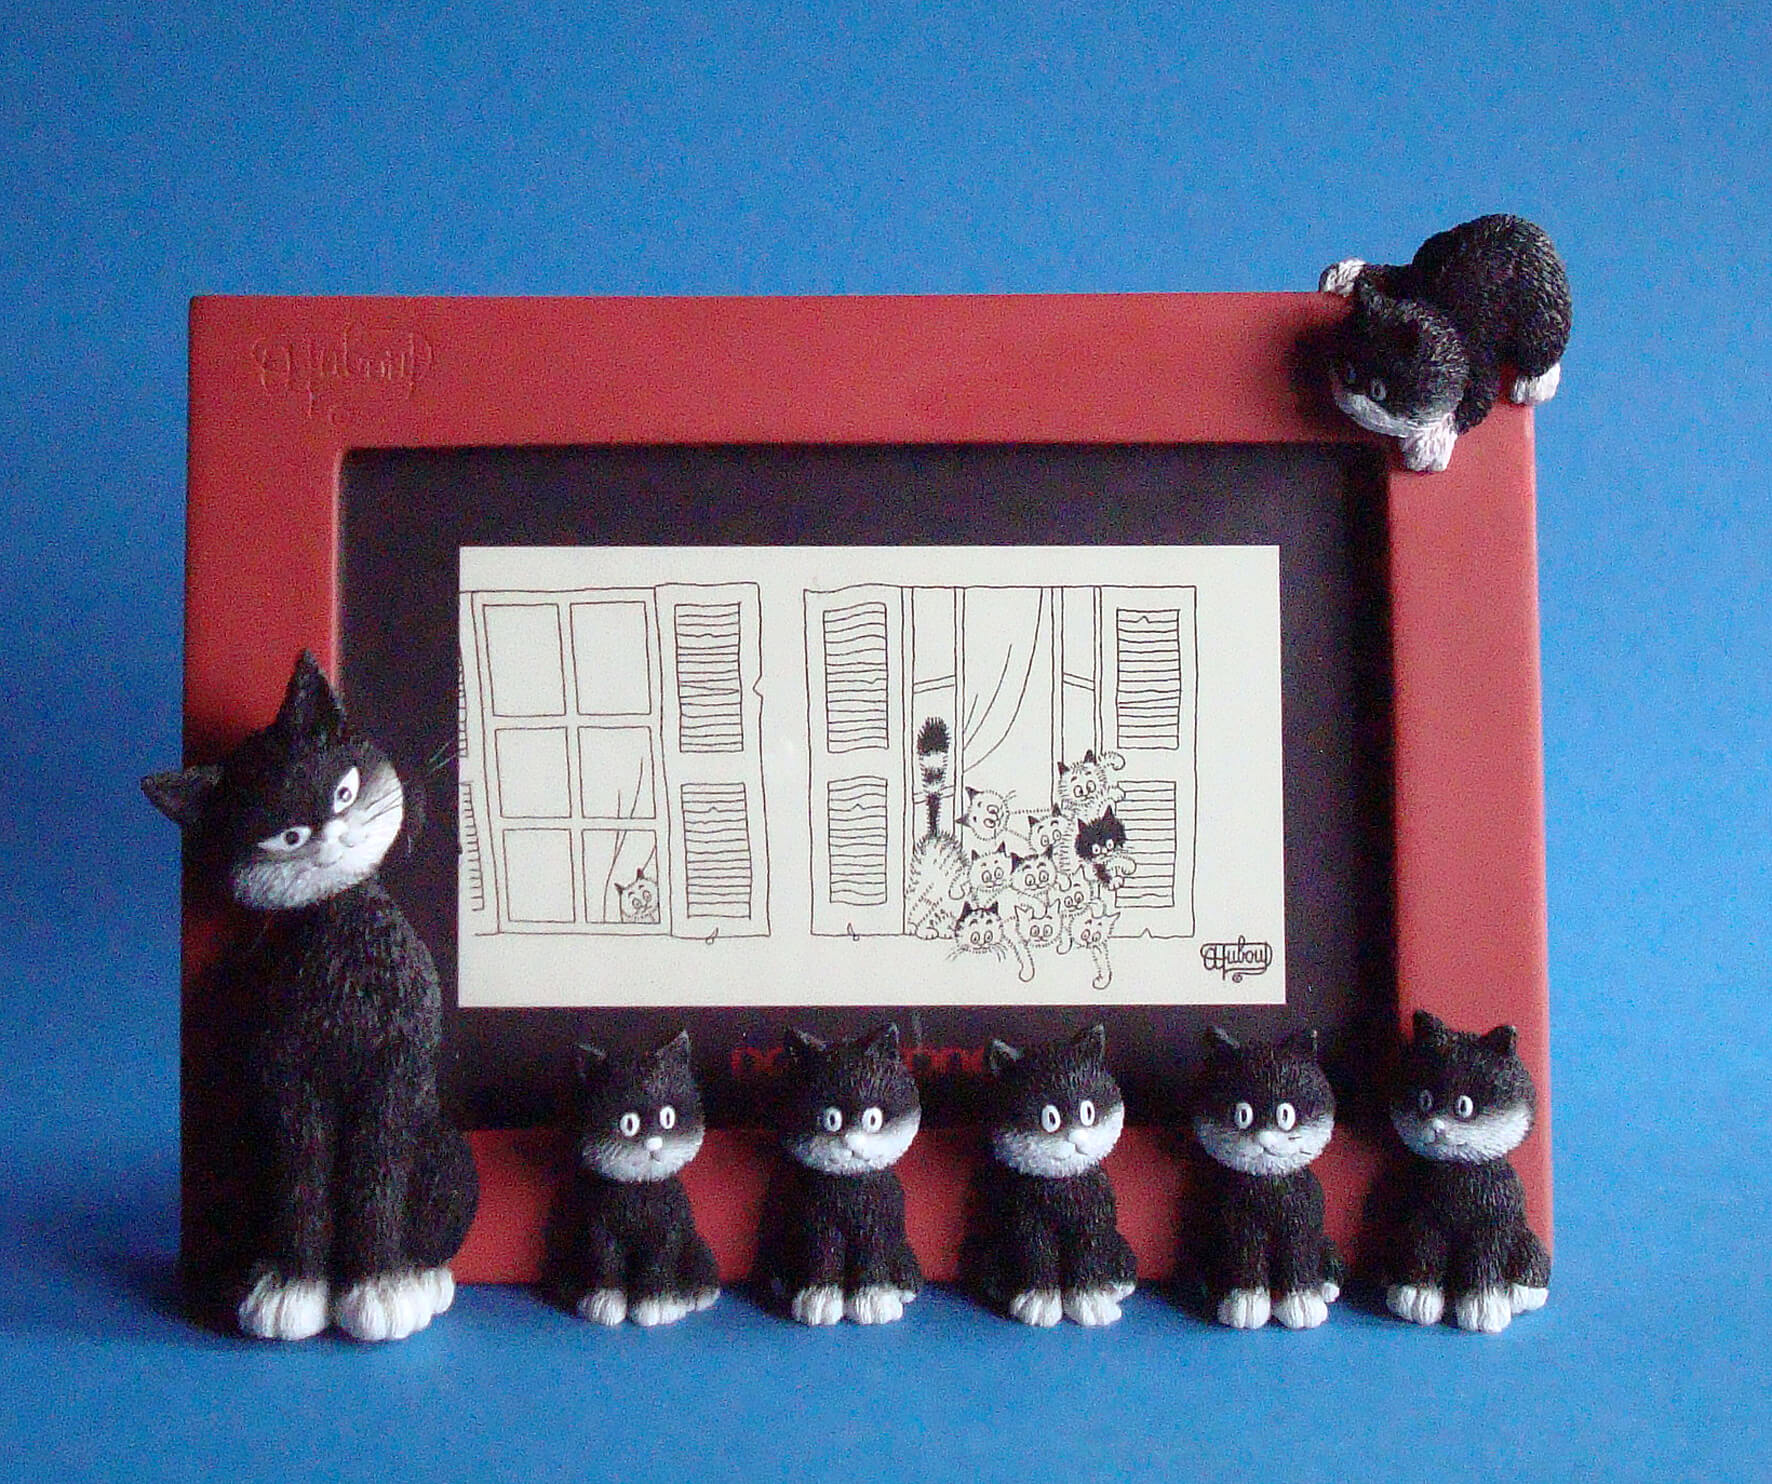 Dubout Cats - Cats in a Line Picture Frame (Red Frame)